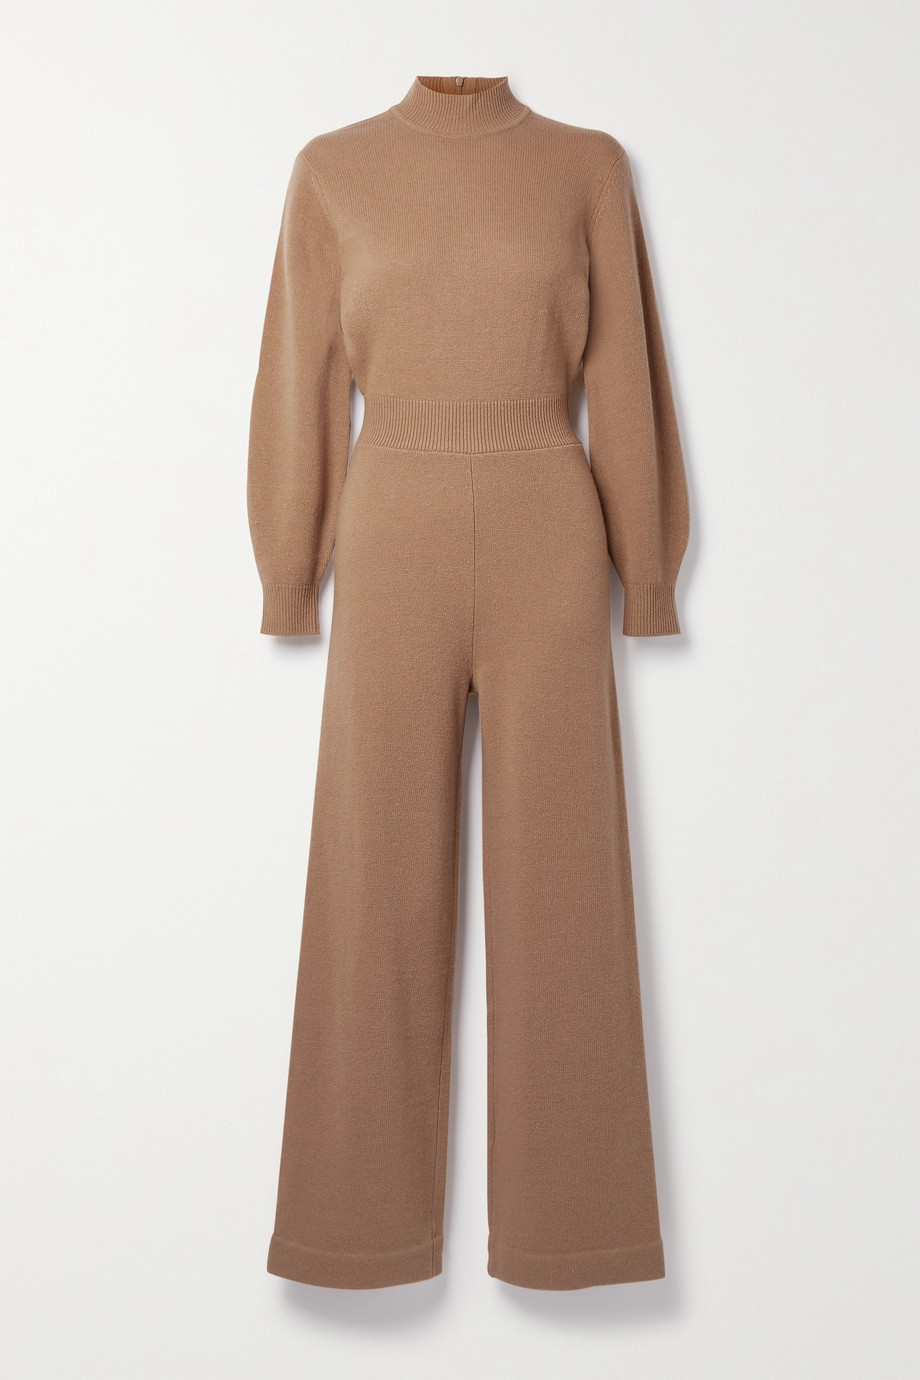 THEORY Wool-blend jumpsuit